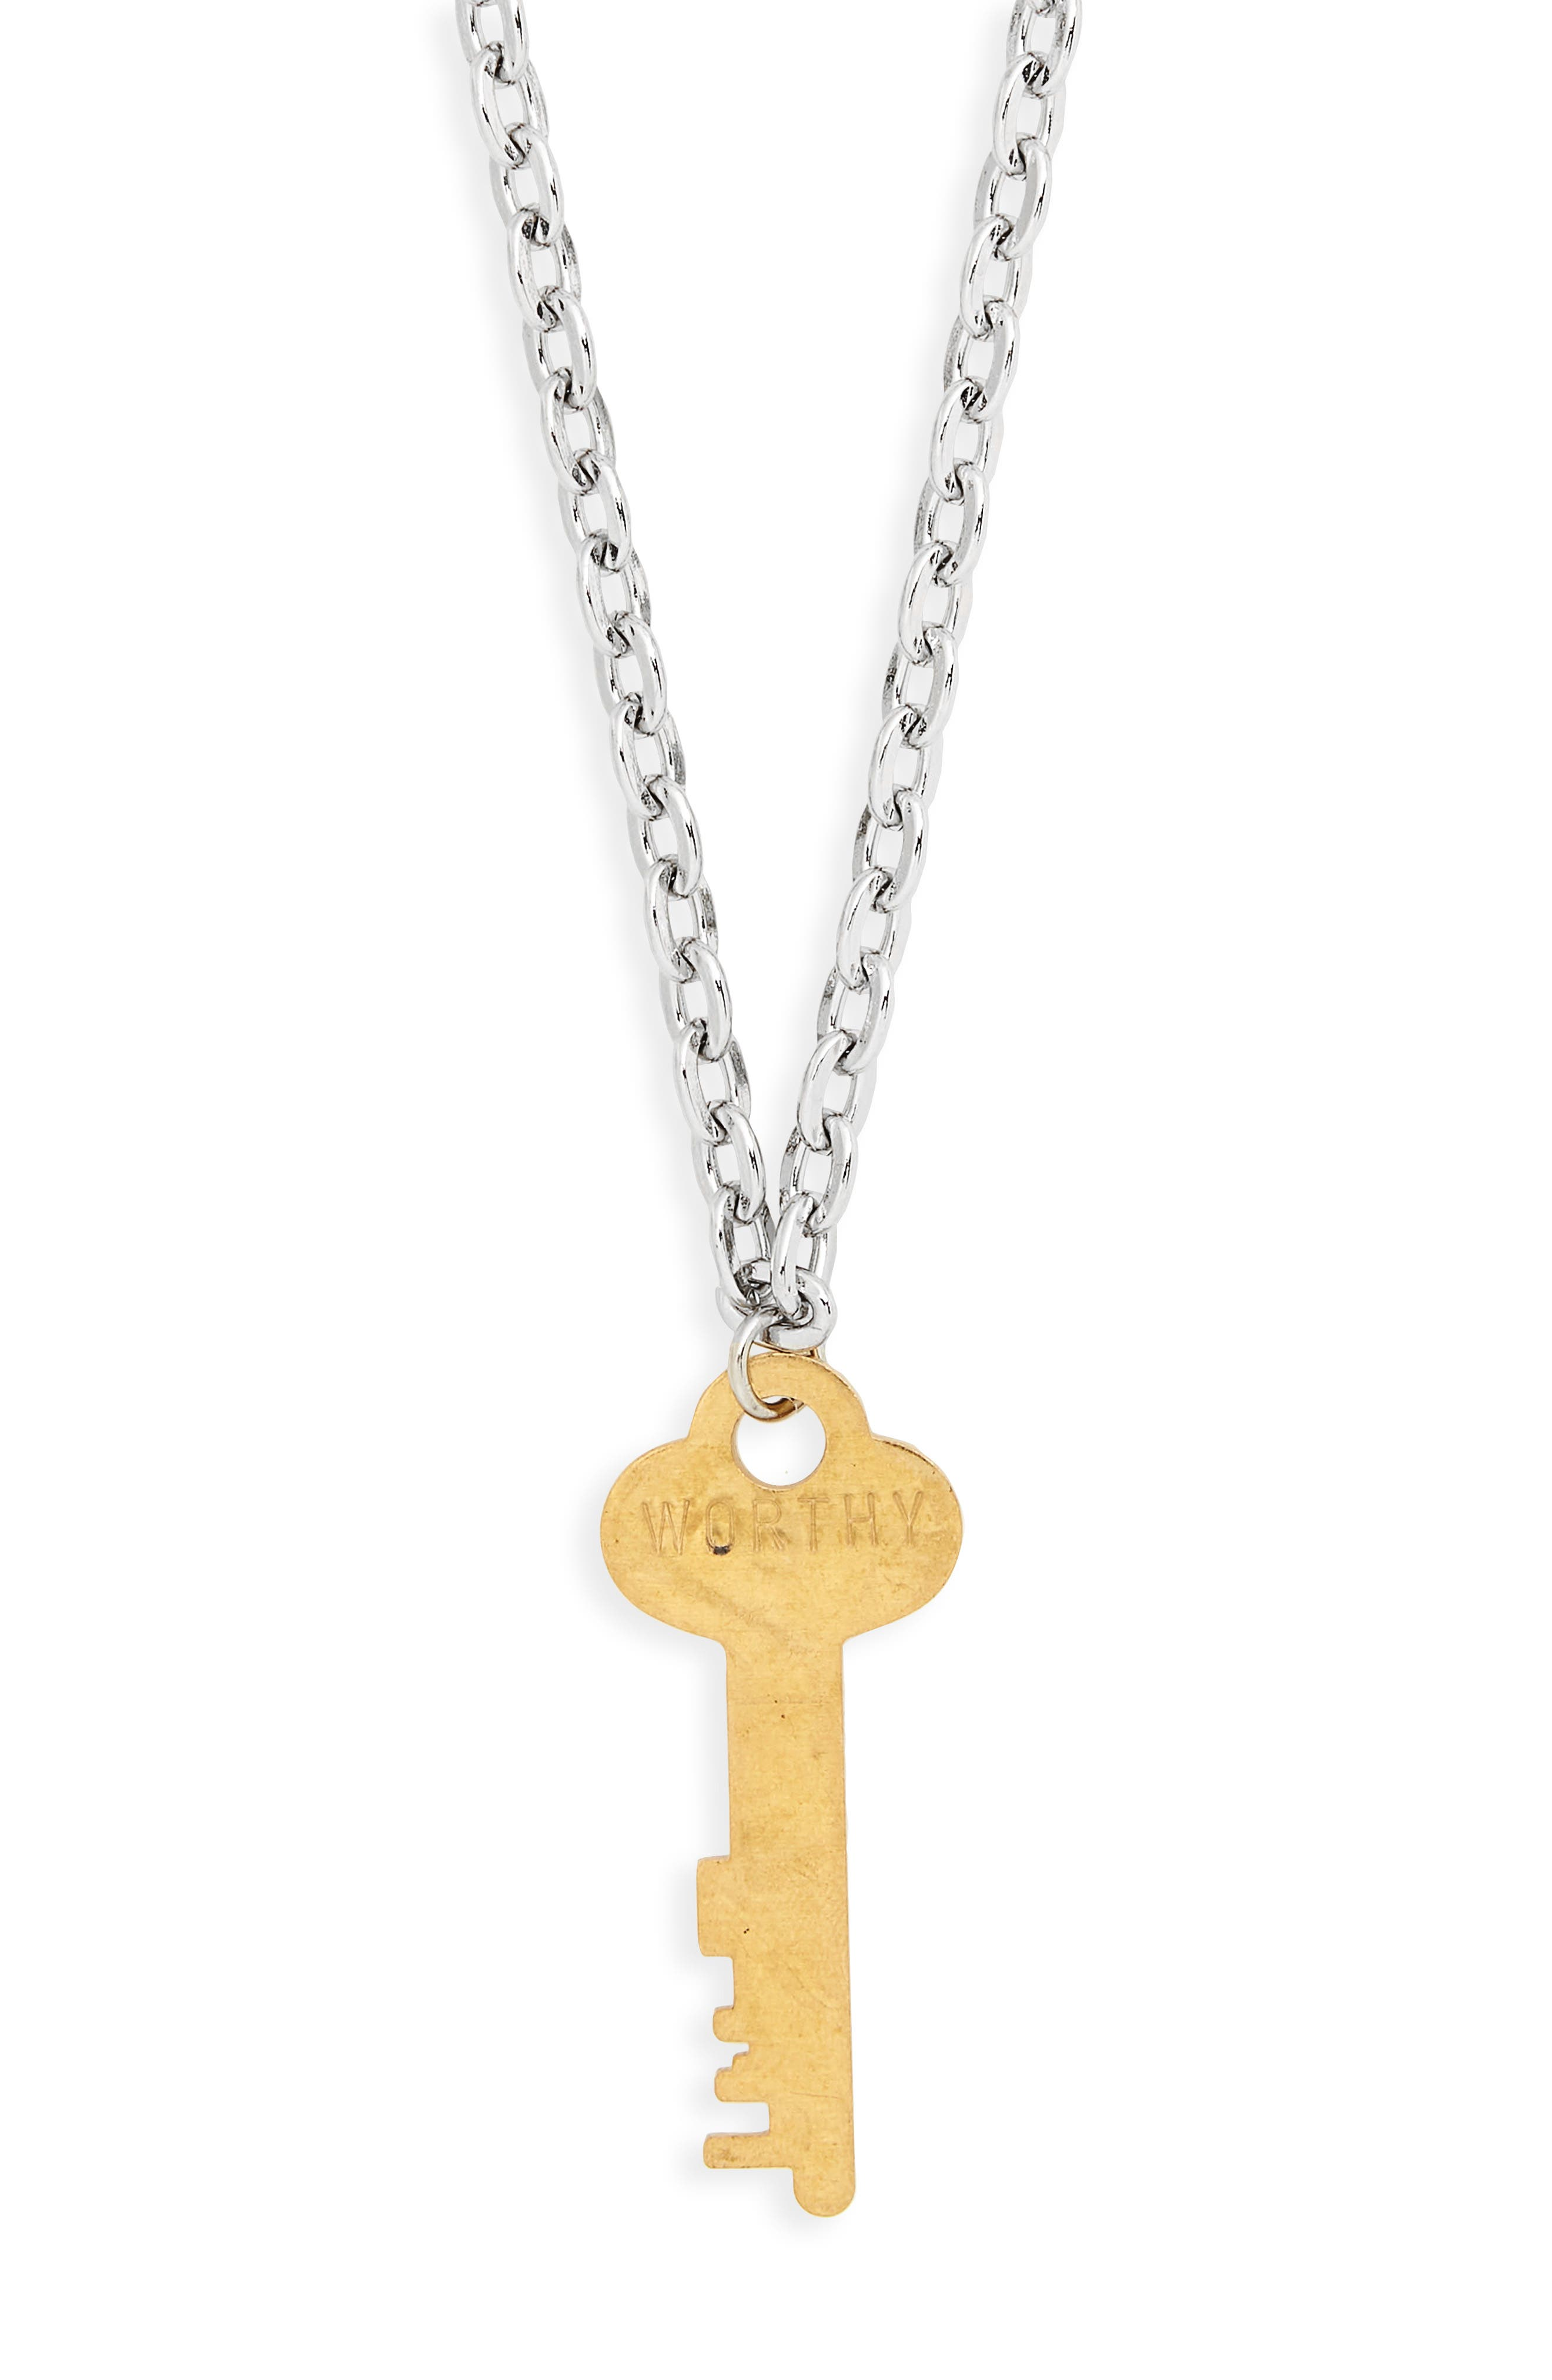 I Am Worthy Key Charm Necklace,                             Alternate thumbnail 5, color,